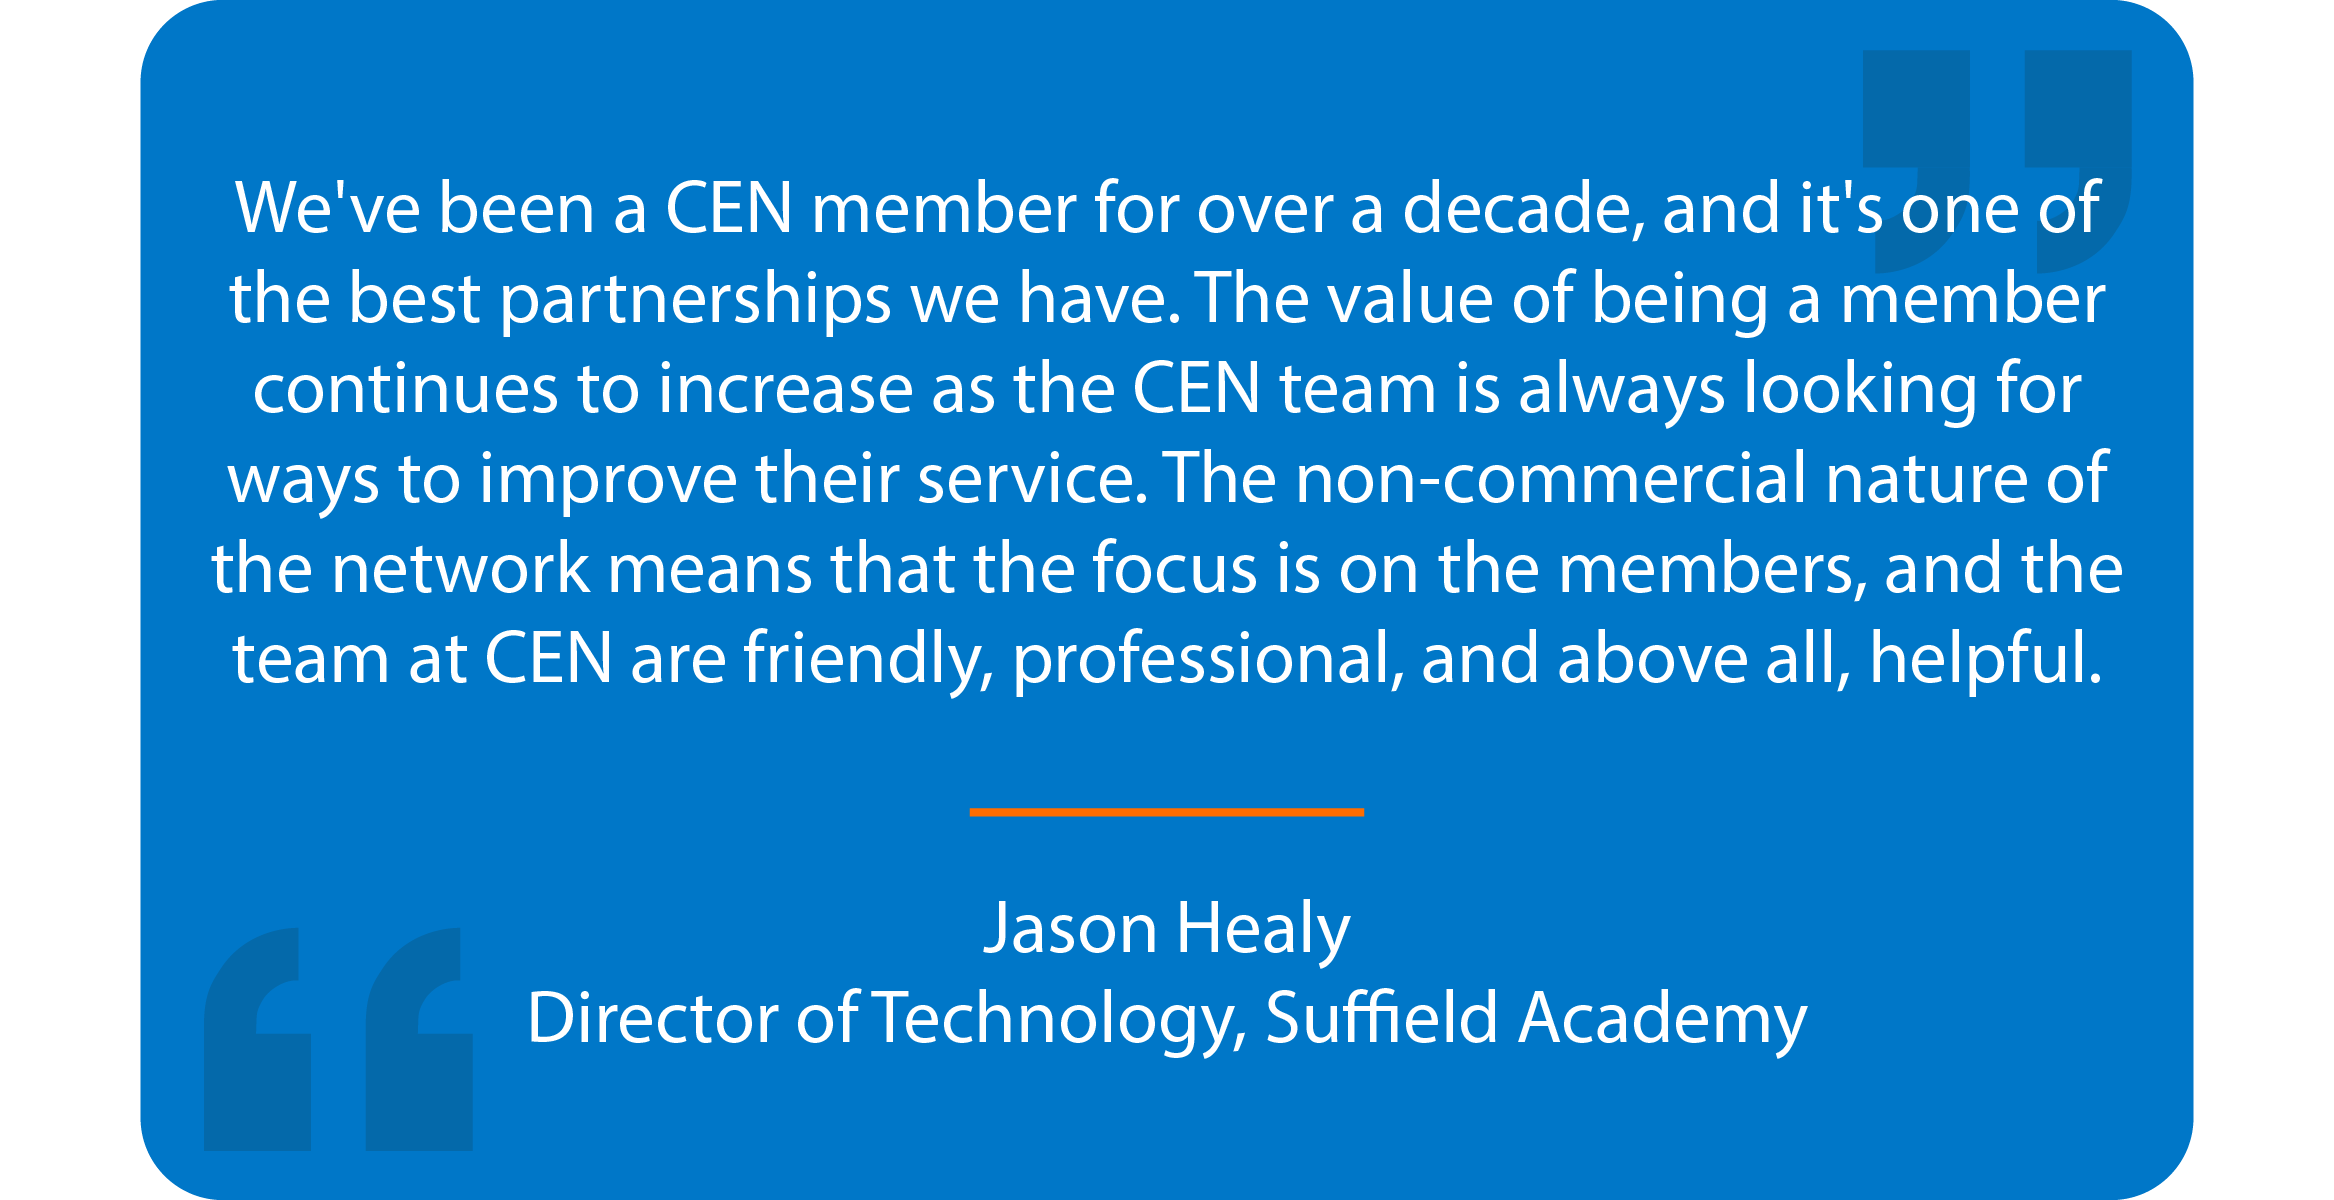 Blue box with quote that reads: We've been a CEN member for over a decade, and it's one of the best partnerships we have. The value of being a member continues to increase as the CEN team is always looking for ways to improve their service. The non-commercial nature of the network means that the focus is on the members, and the team at CEN are friendly, professional, and above all, helpful.   Jason Healy Director of Technology, Suffield Academy